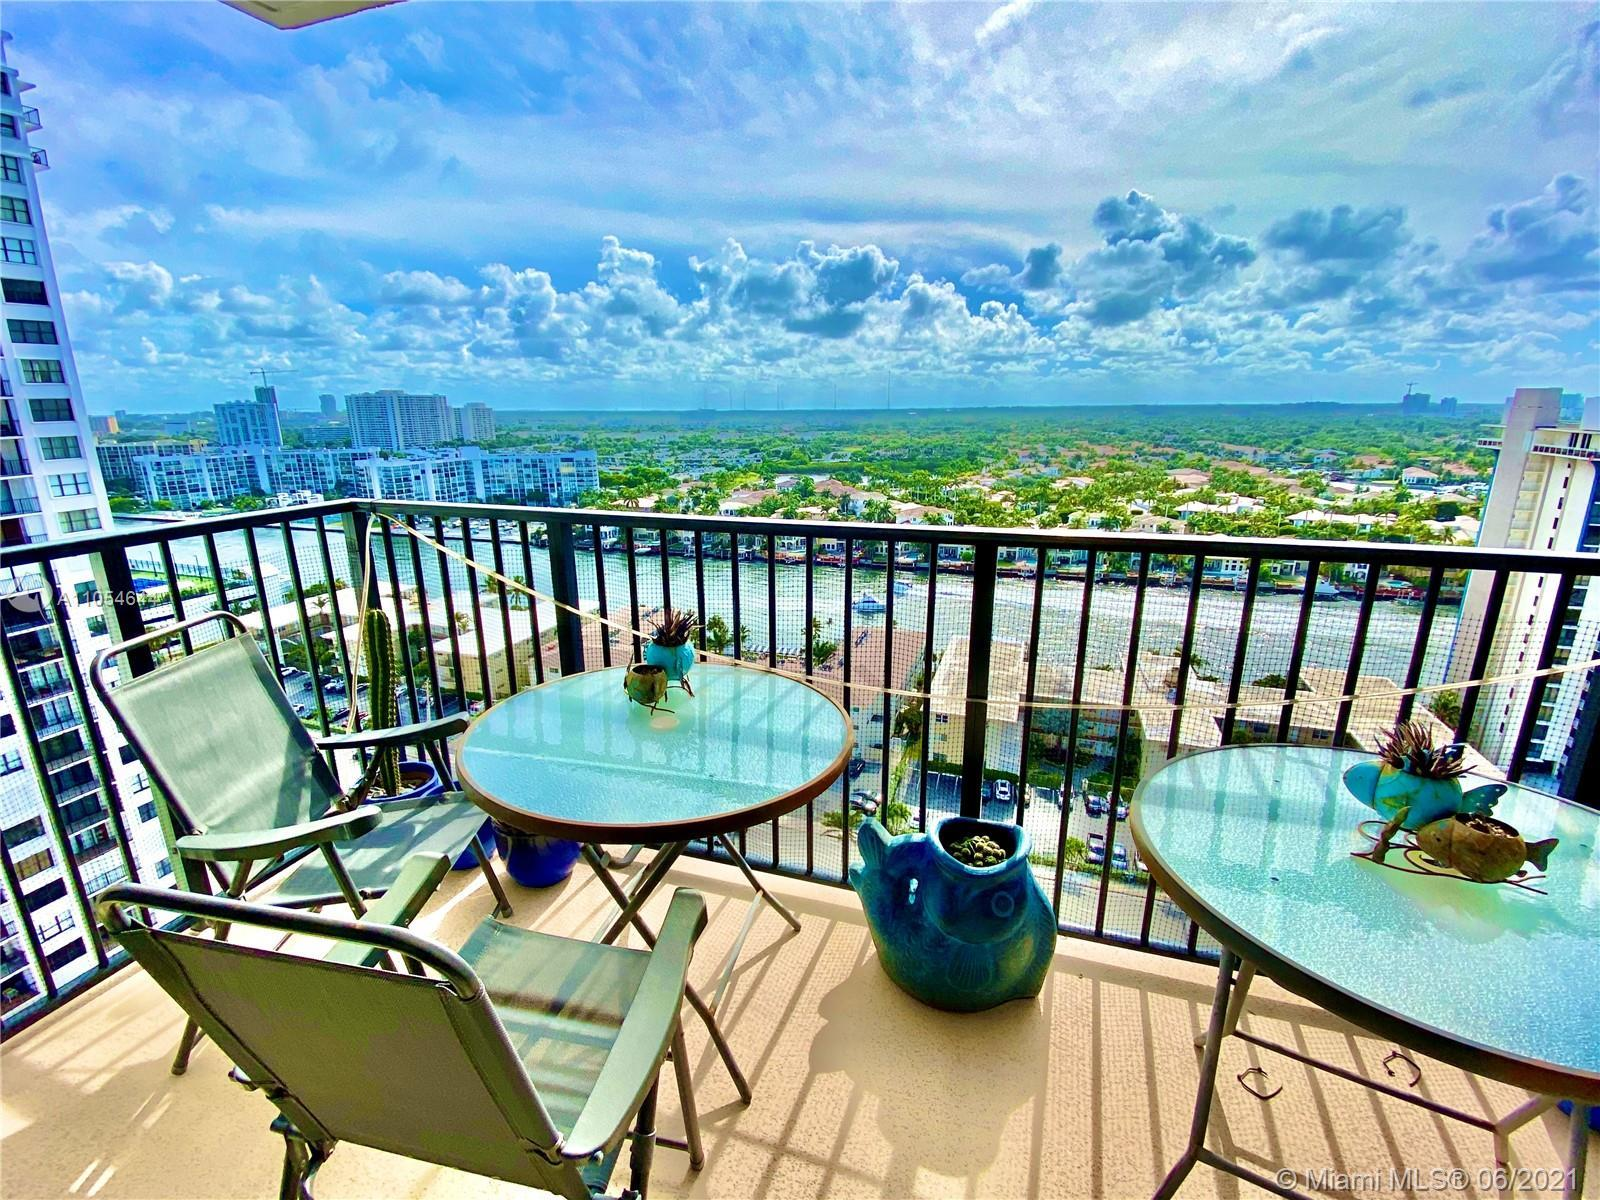 Extremely RARE 1 bedroom 2 FULL bathrooms condo on the east side of Ocean Drive. You can search but